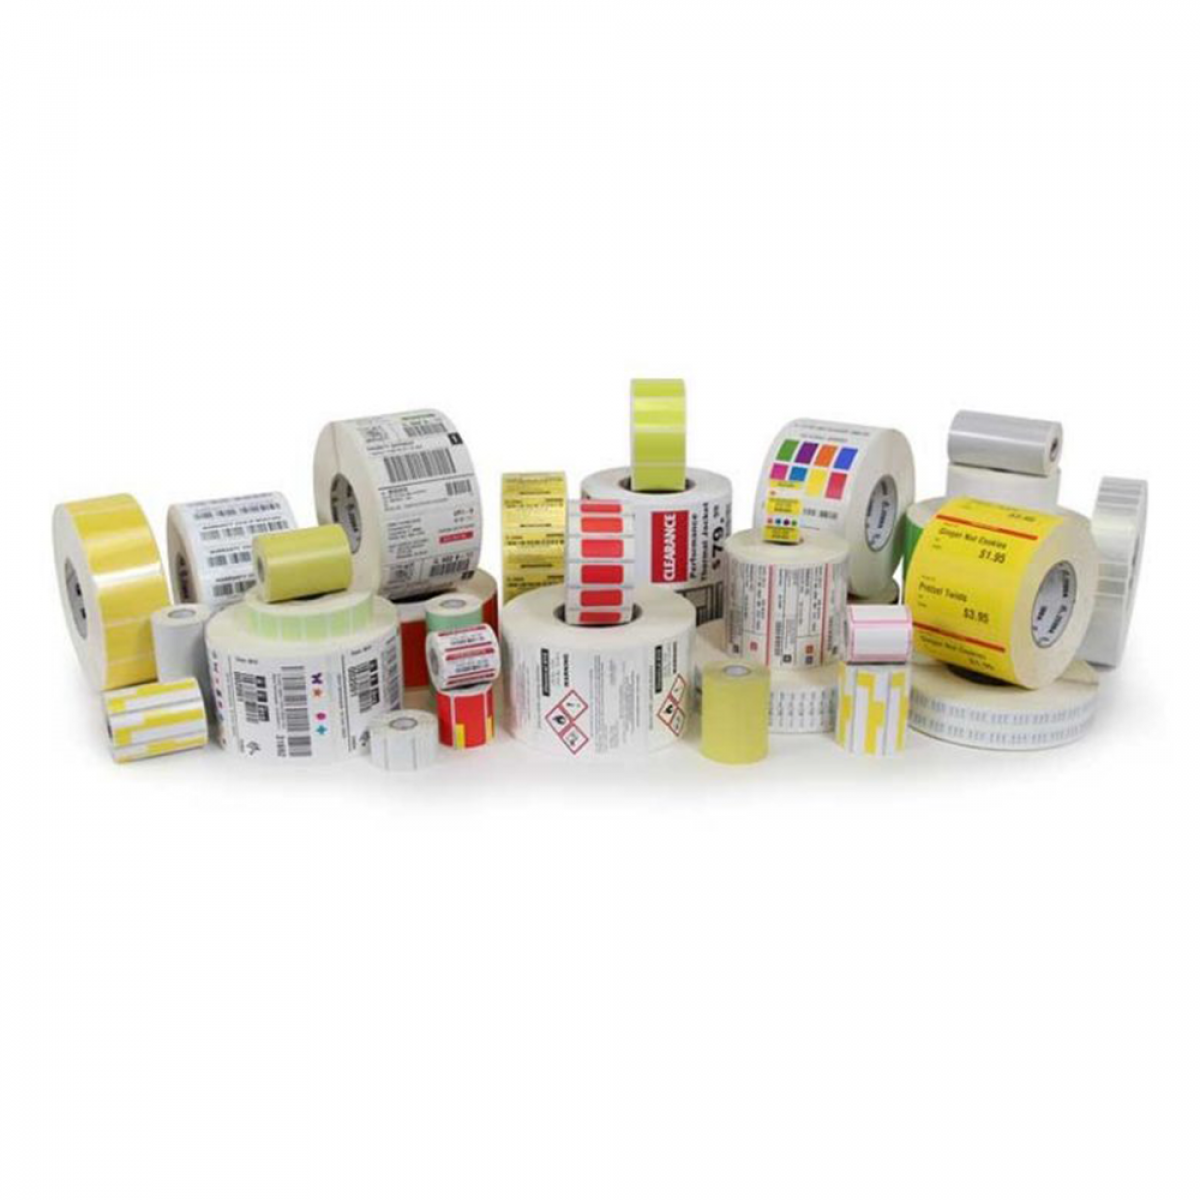 Printing supplies and custom labels